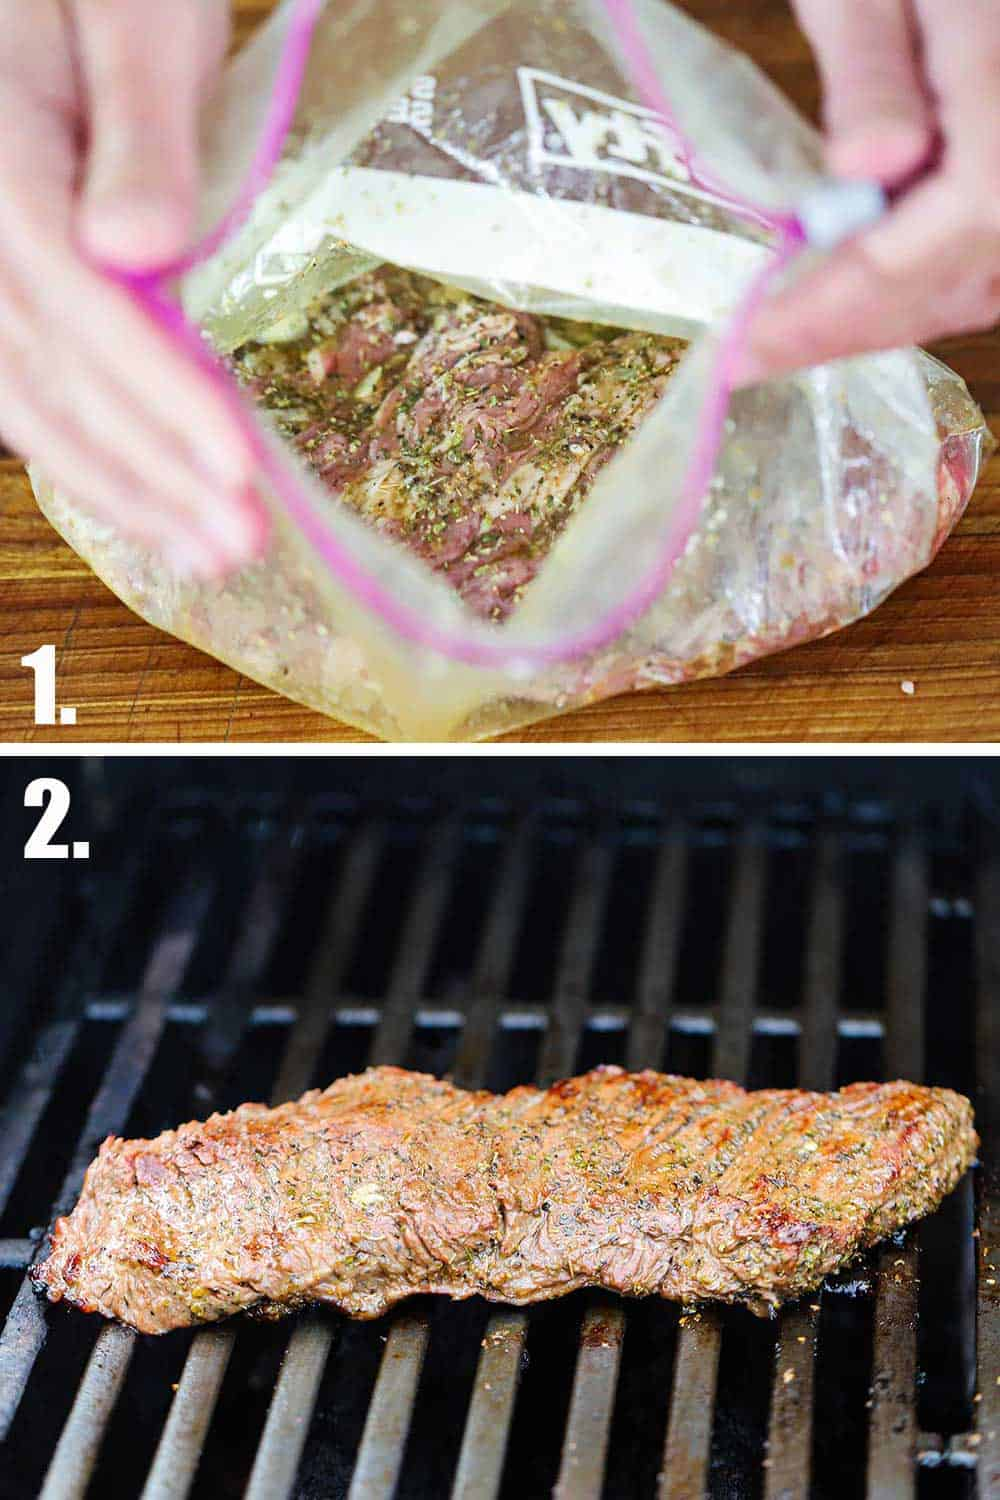 A plastic baggie filled with a skirt steak and a Greek dressing and then that steak on a gas grill.